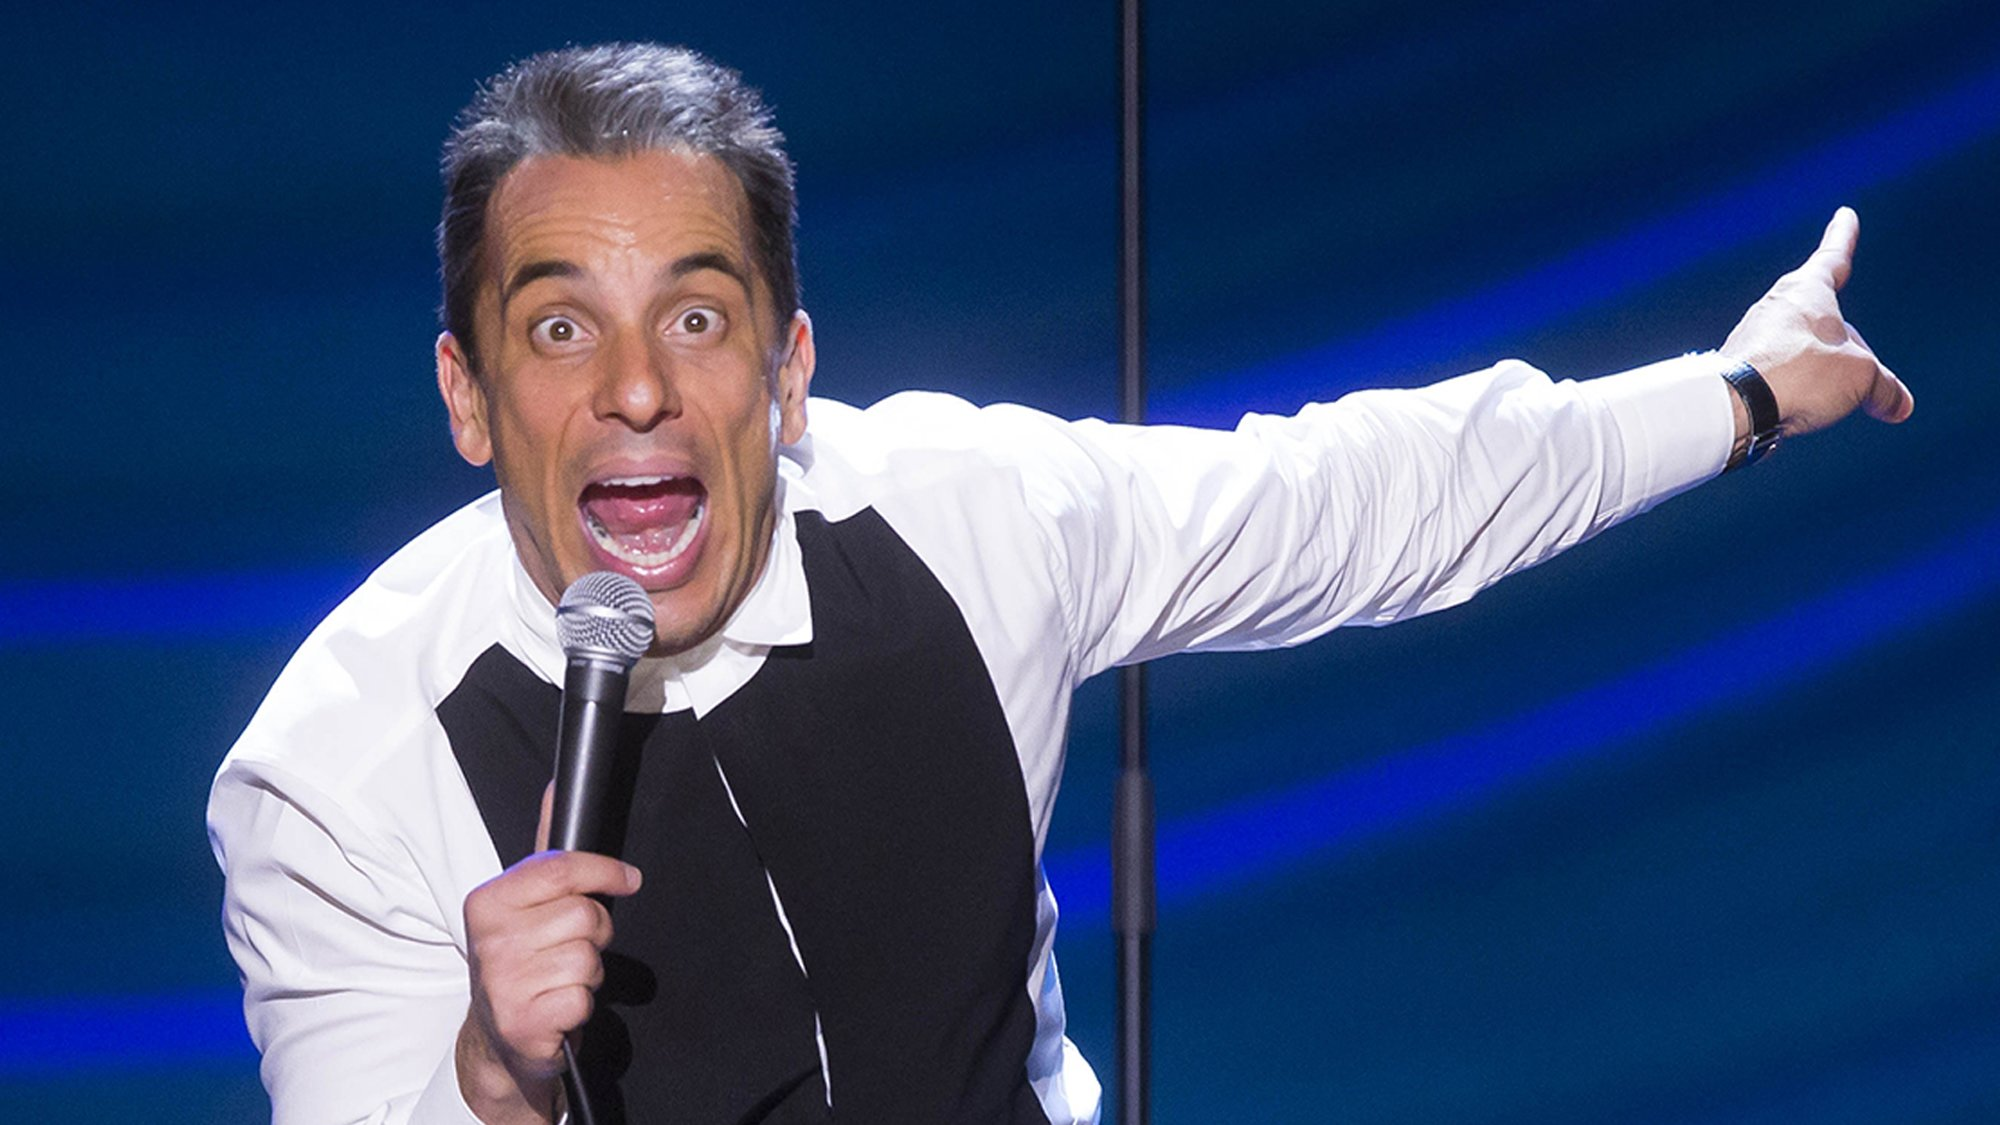 Crave - Sebastian Maniscalco: Why Would You Do That?